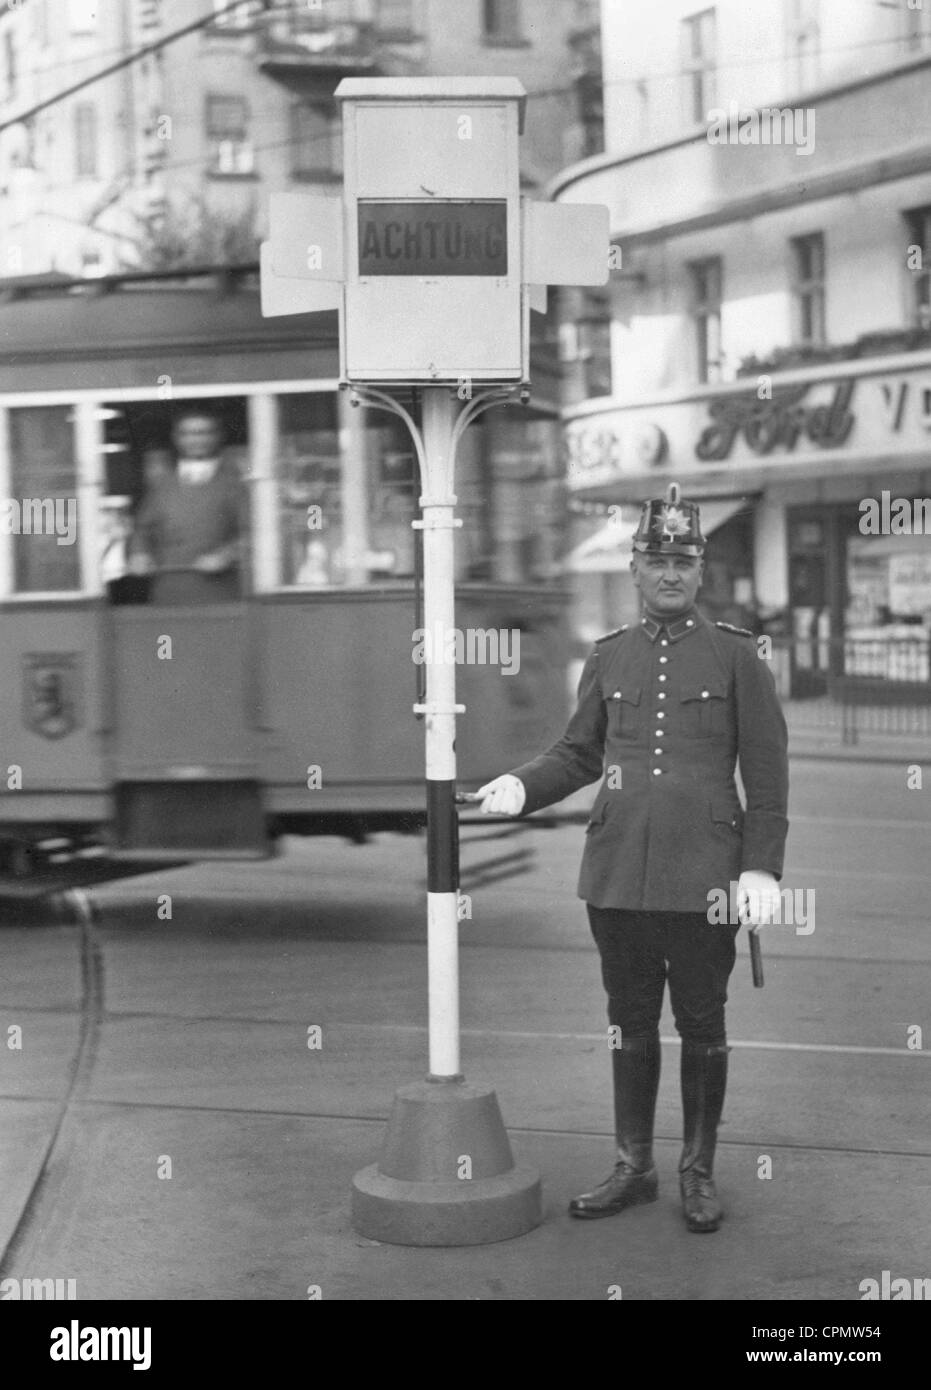 Policeman operates new streetlight on Hermannsplatz - Stock Image